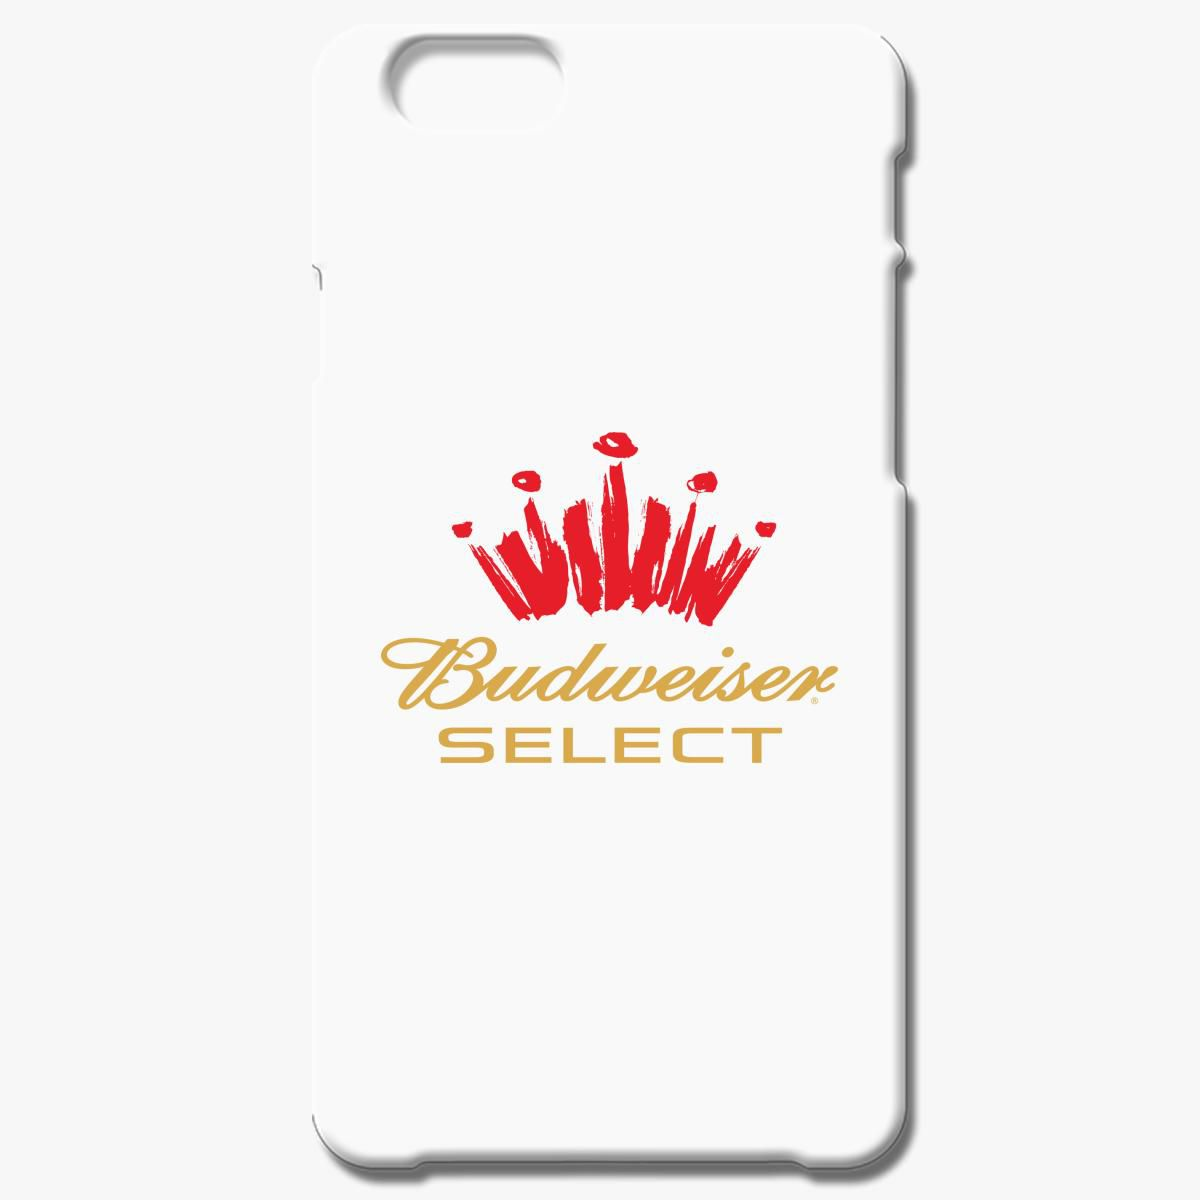 Budweiser Select Iphone 6 6s Case